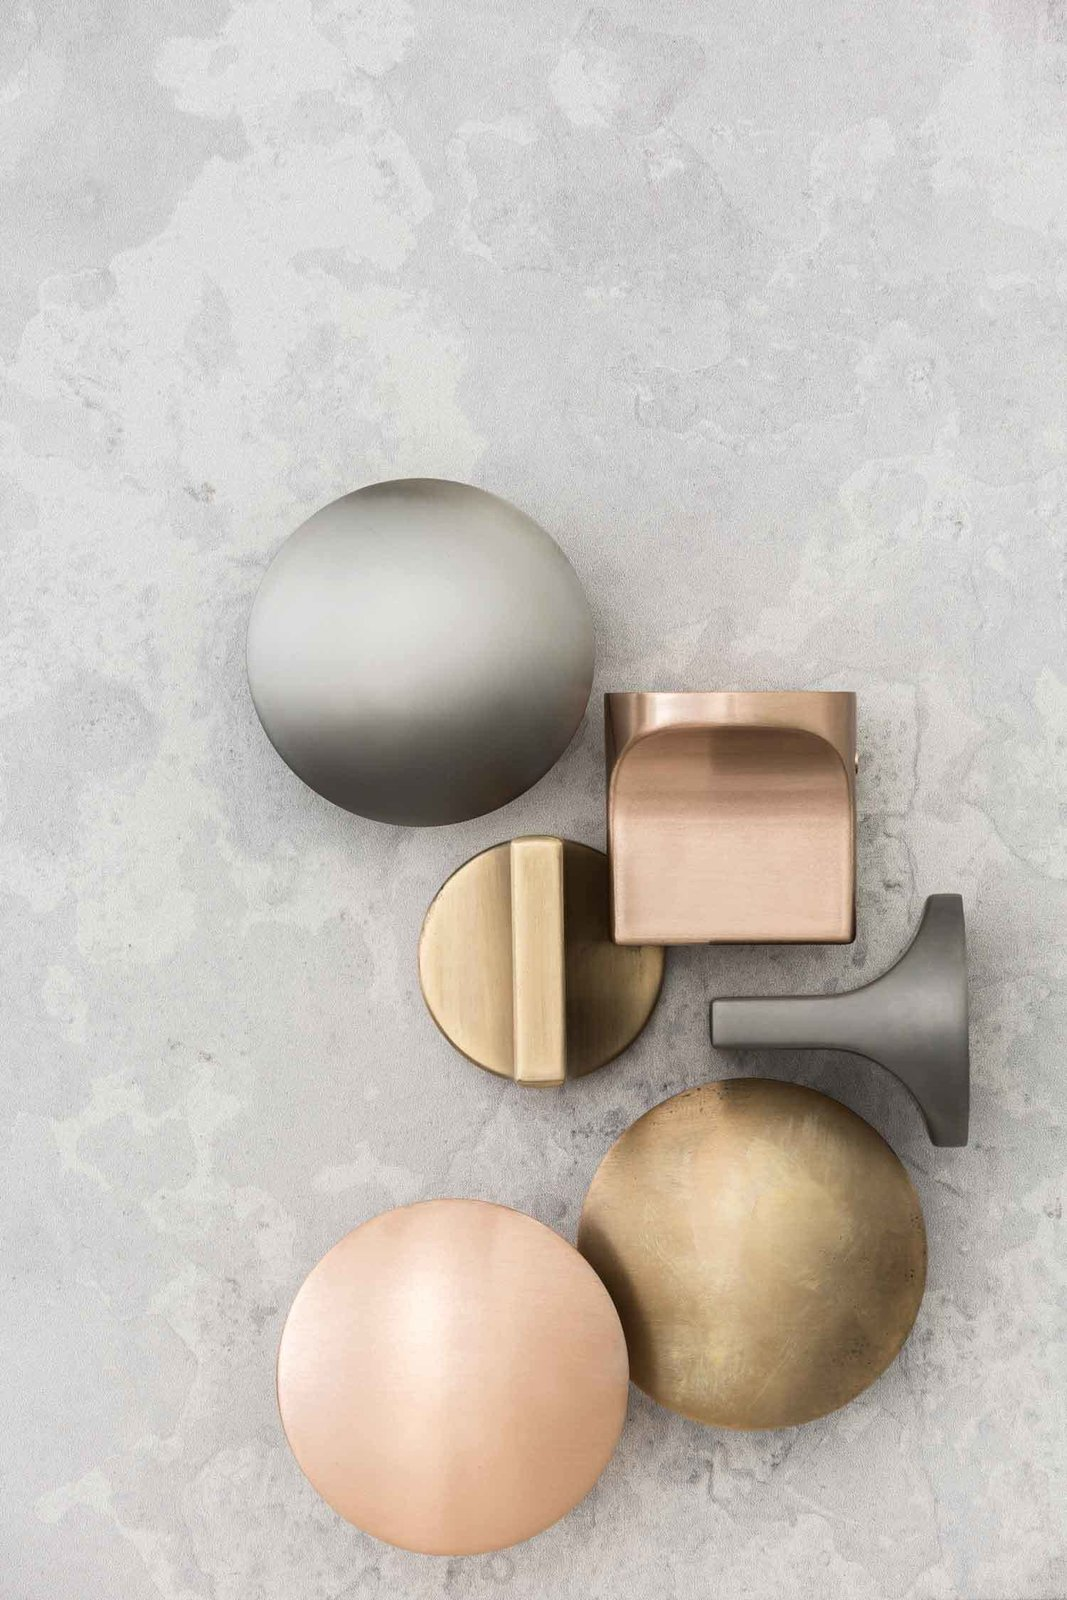 Beautifully finished knobs from Aussie brand, Rogerseller.  Photo 5 of 11 in 10 Effective Tips For Making the Most Out of Small Space Interiors